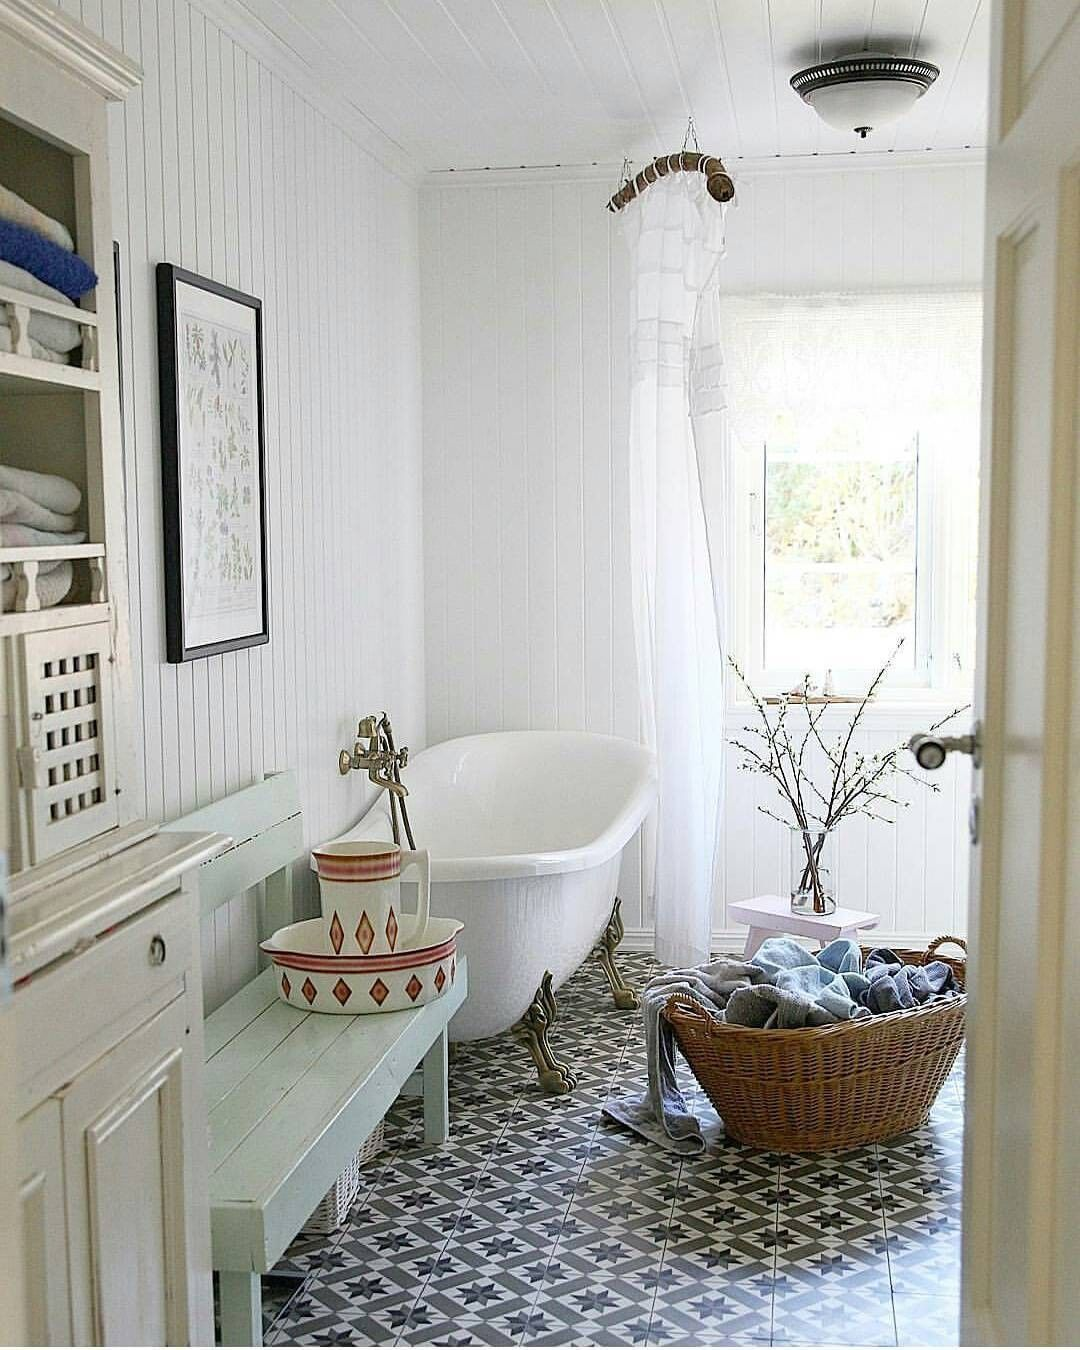 Hello Bathroom Goals The Airy Vibes Clawfoot Tub And Tile Create The Most Relaxing Scene Hver With Images Master Bedroom Bathroom Household Decor Bathroom Goals